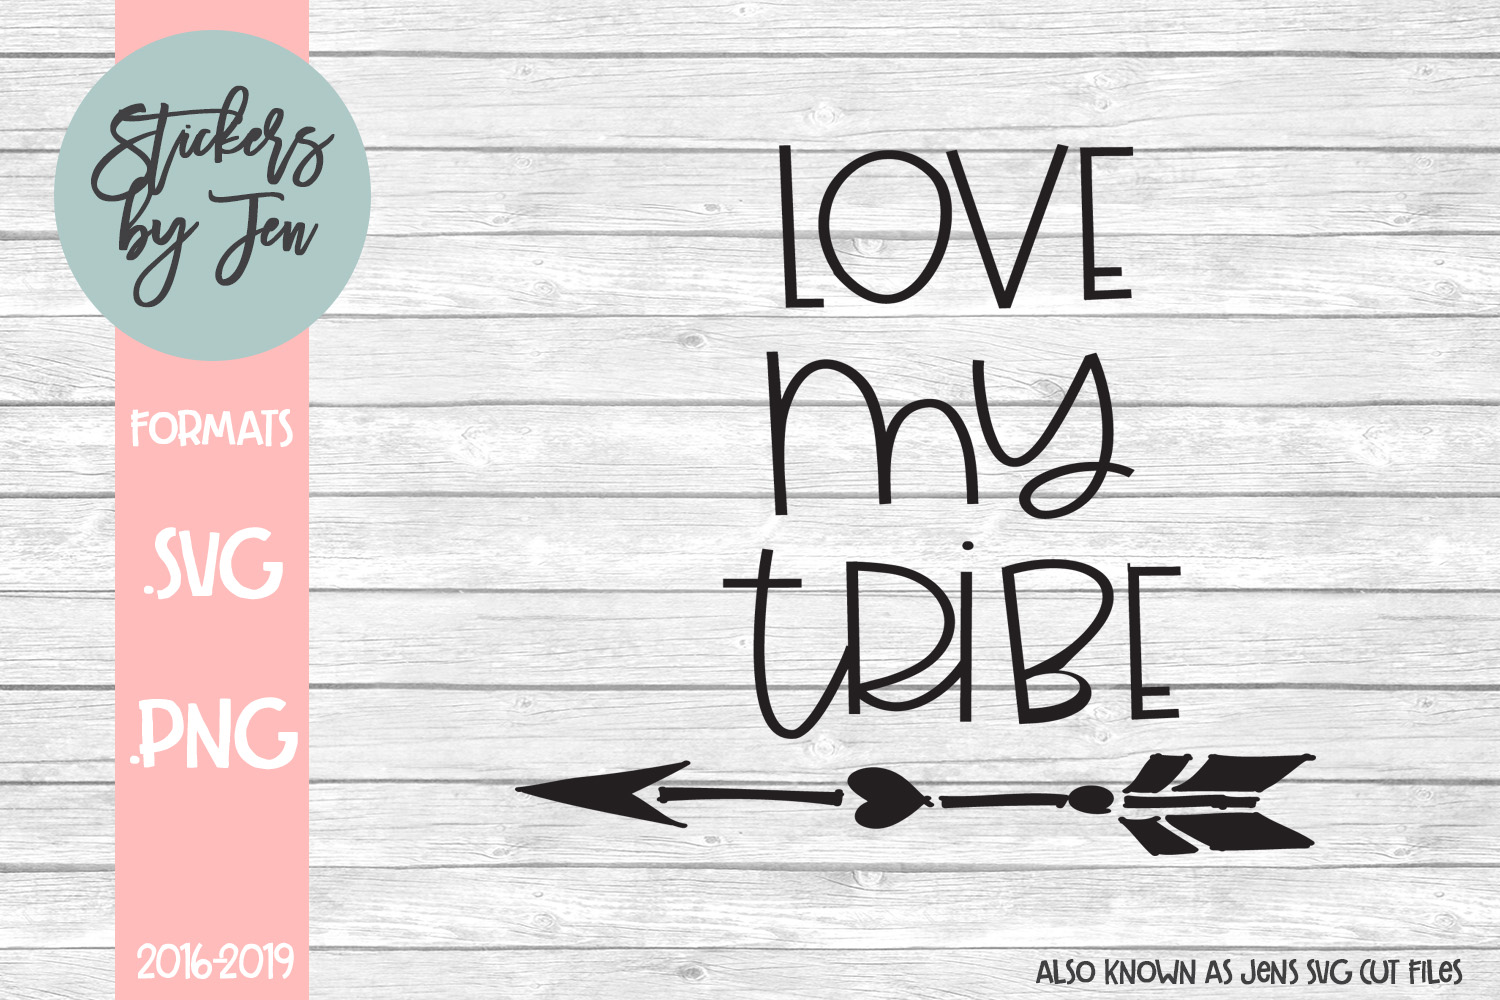 Download Love My Tribe SVG Graphic by Jens Svg Cut Files - Creative ...